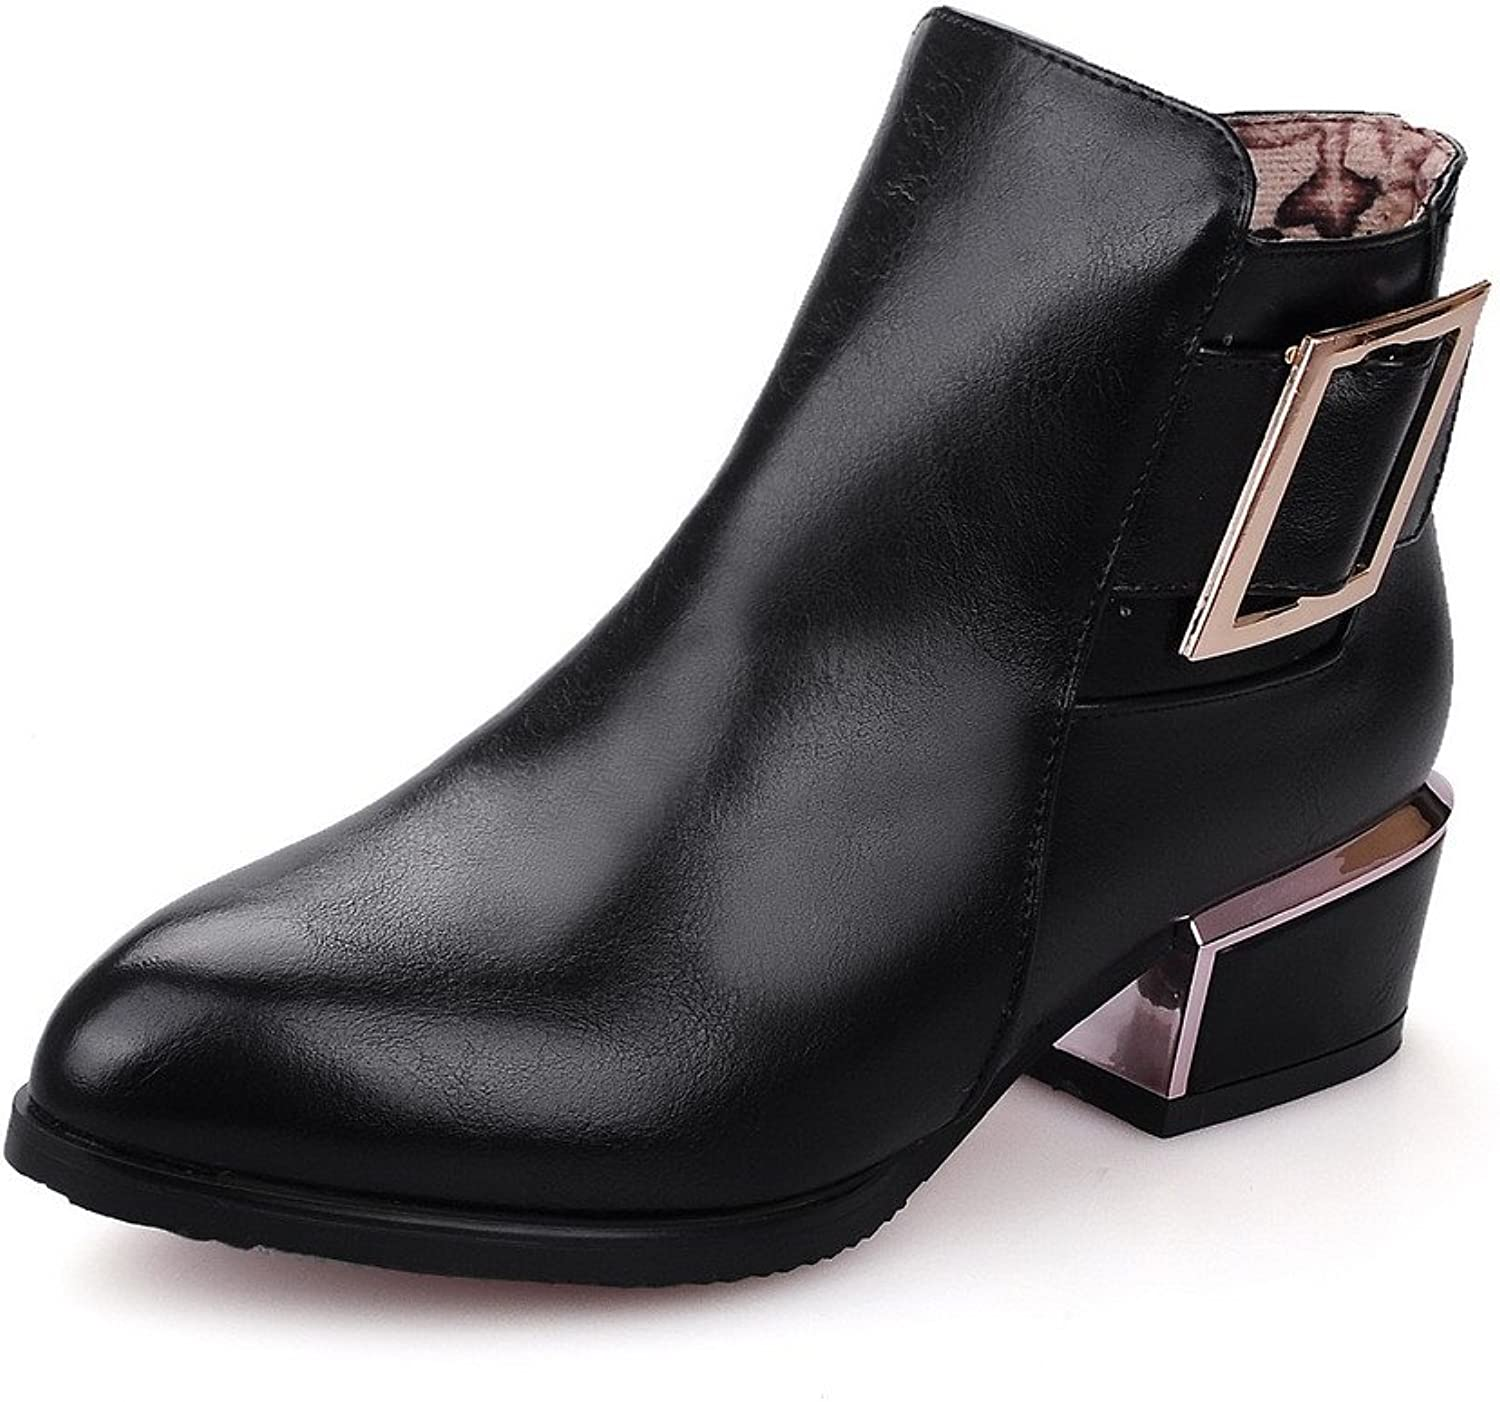 AllhqFashion Women's Ankle-high Solid Zipper Pointed Closed Toe Low-Heels Boots